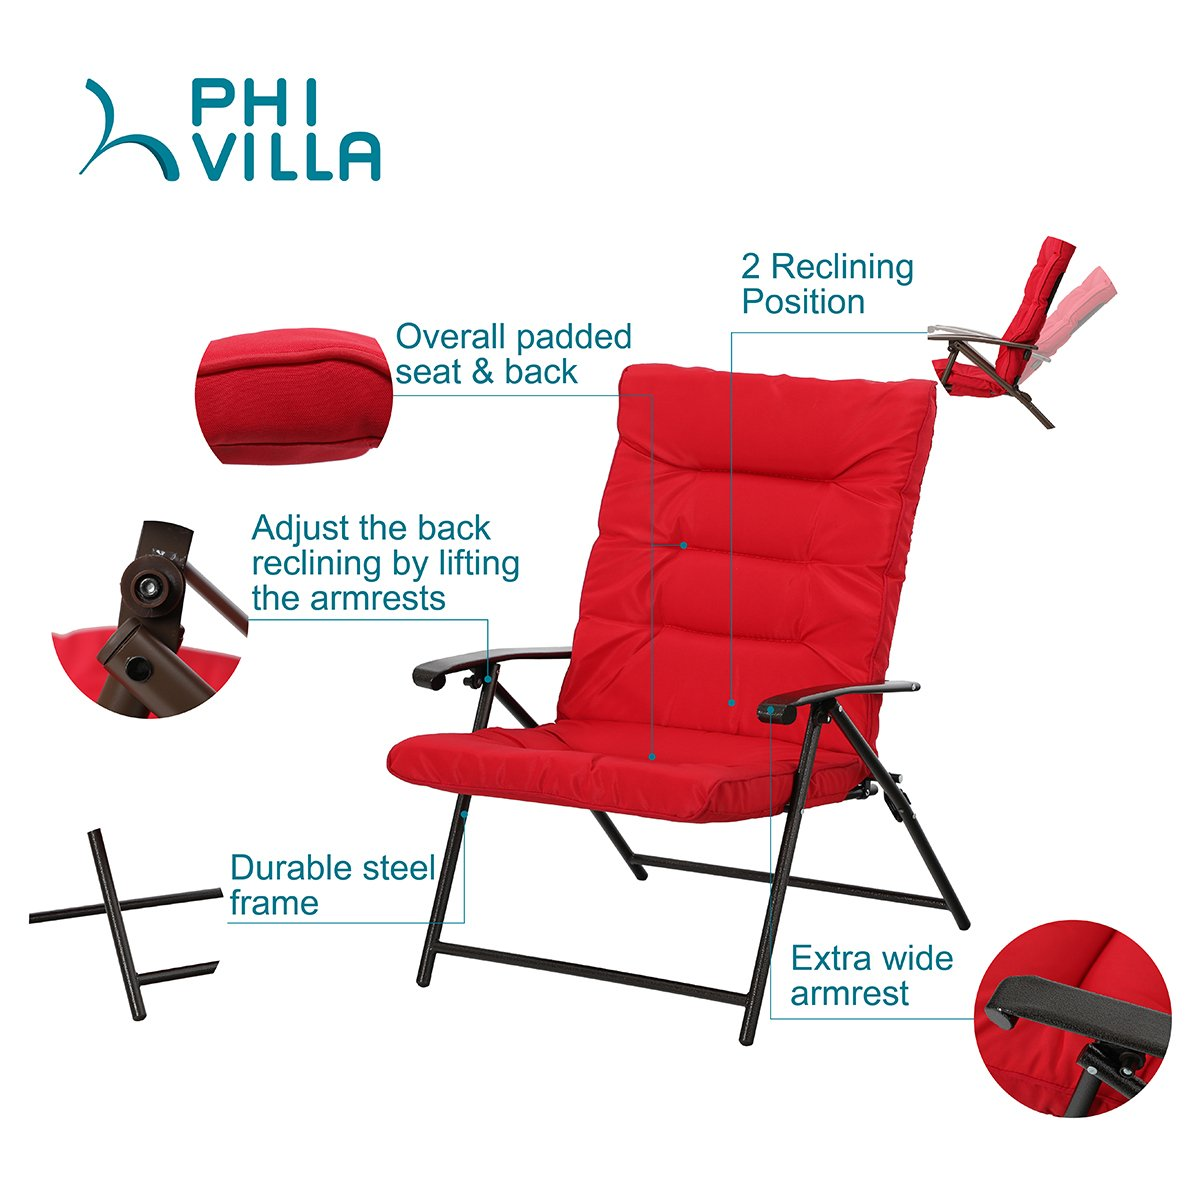 Amazon.com: PHI VILLA Patio - Juego de 3 sillas plegables ...